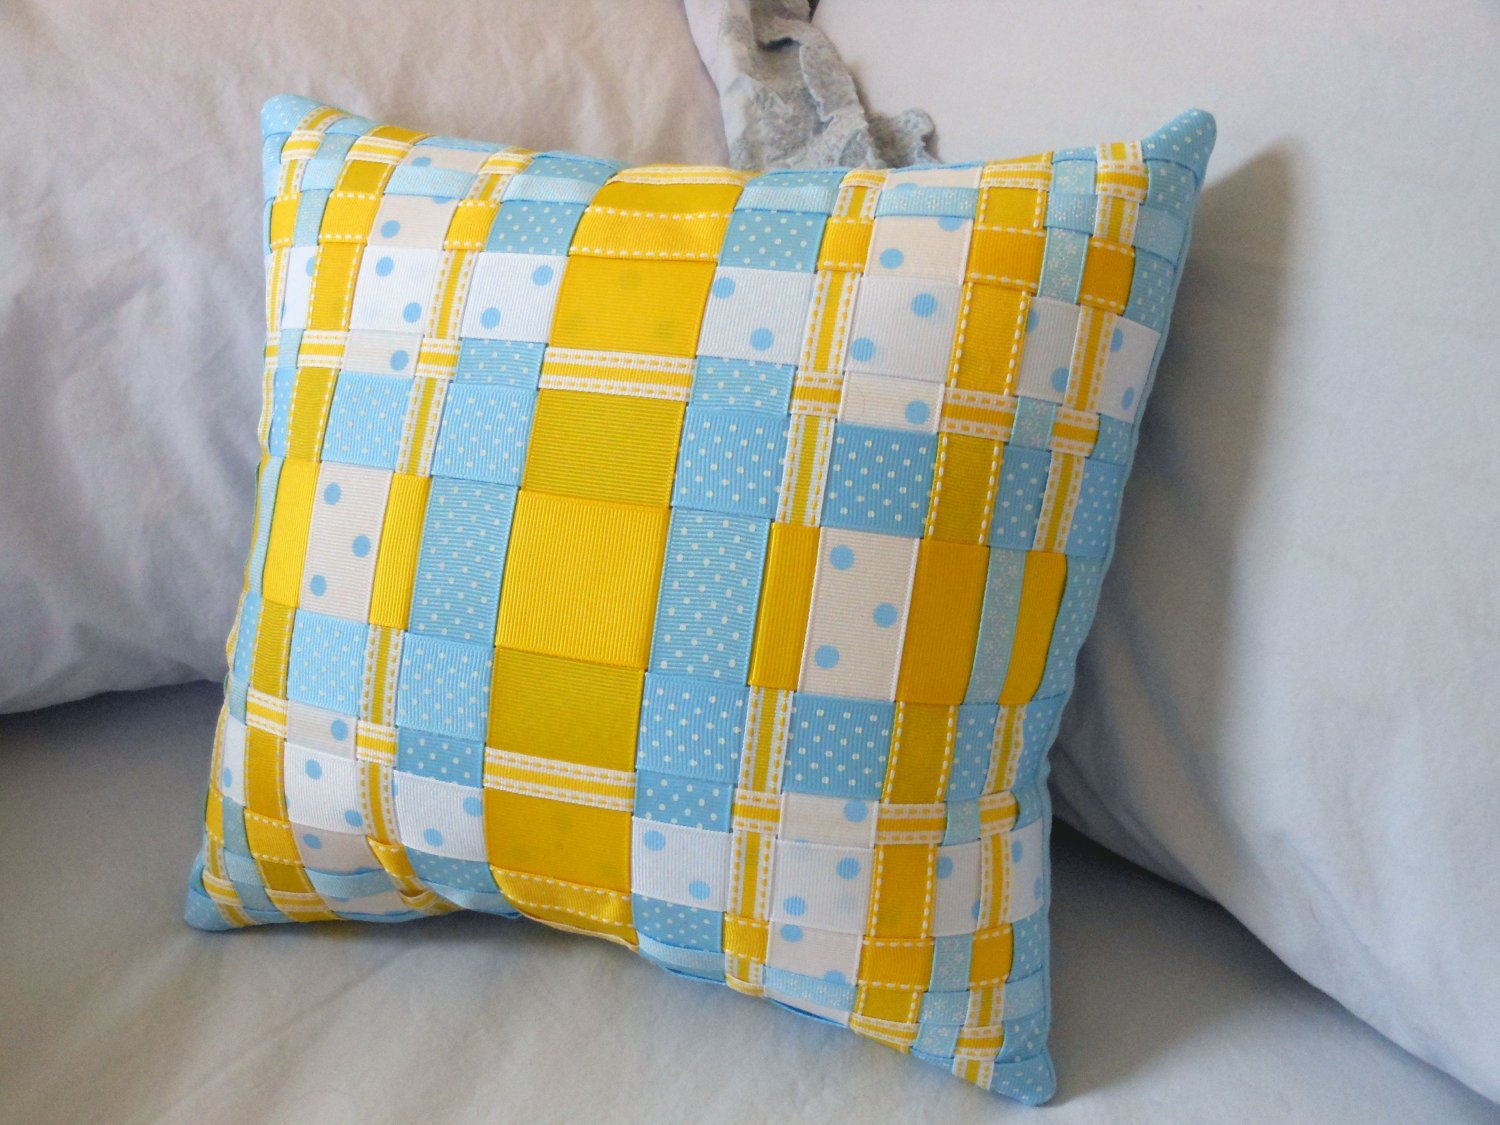 simply blue and yellow decorative woven ribbon pillow grosgrain